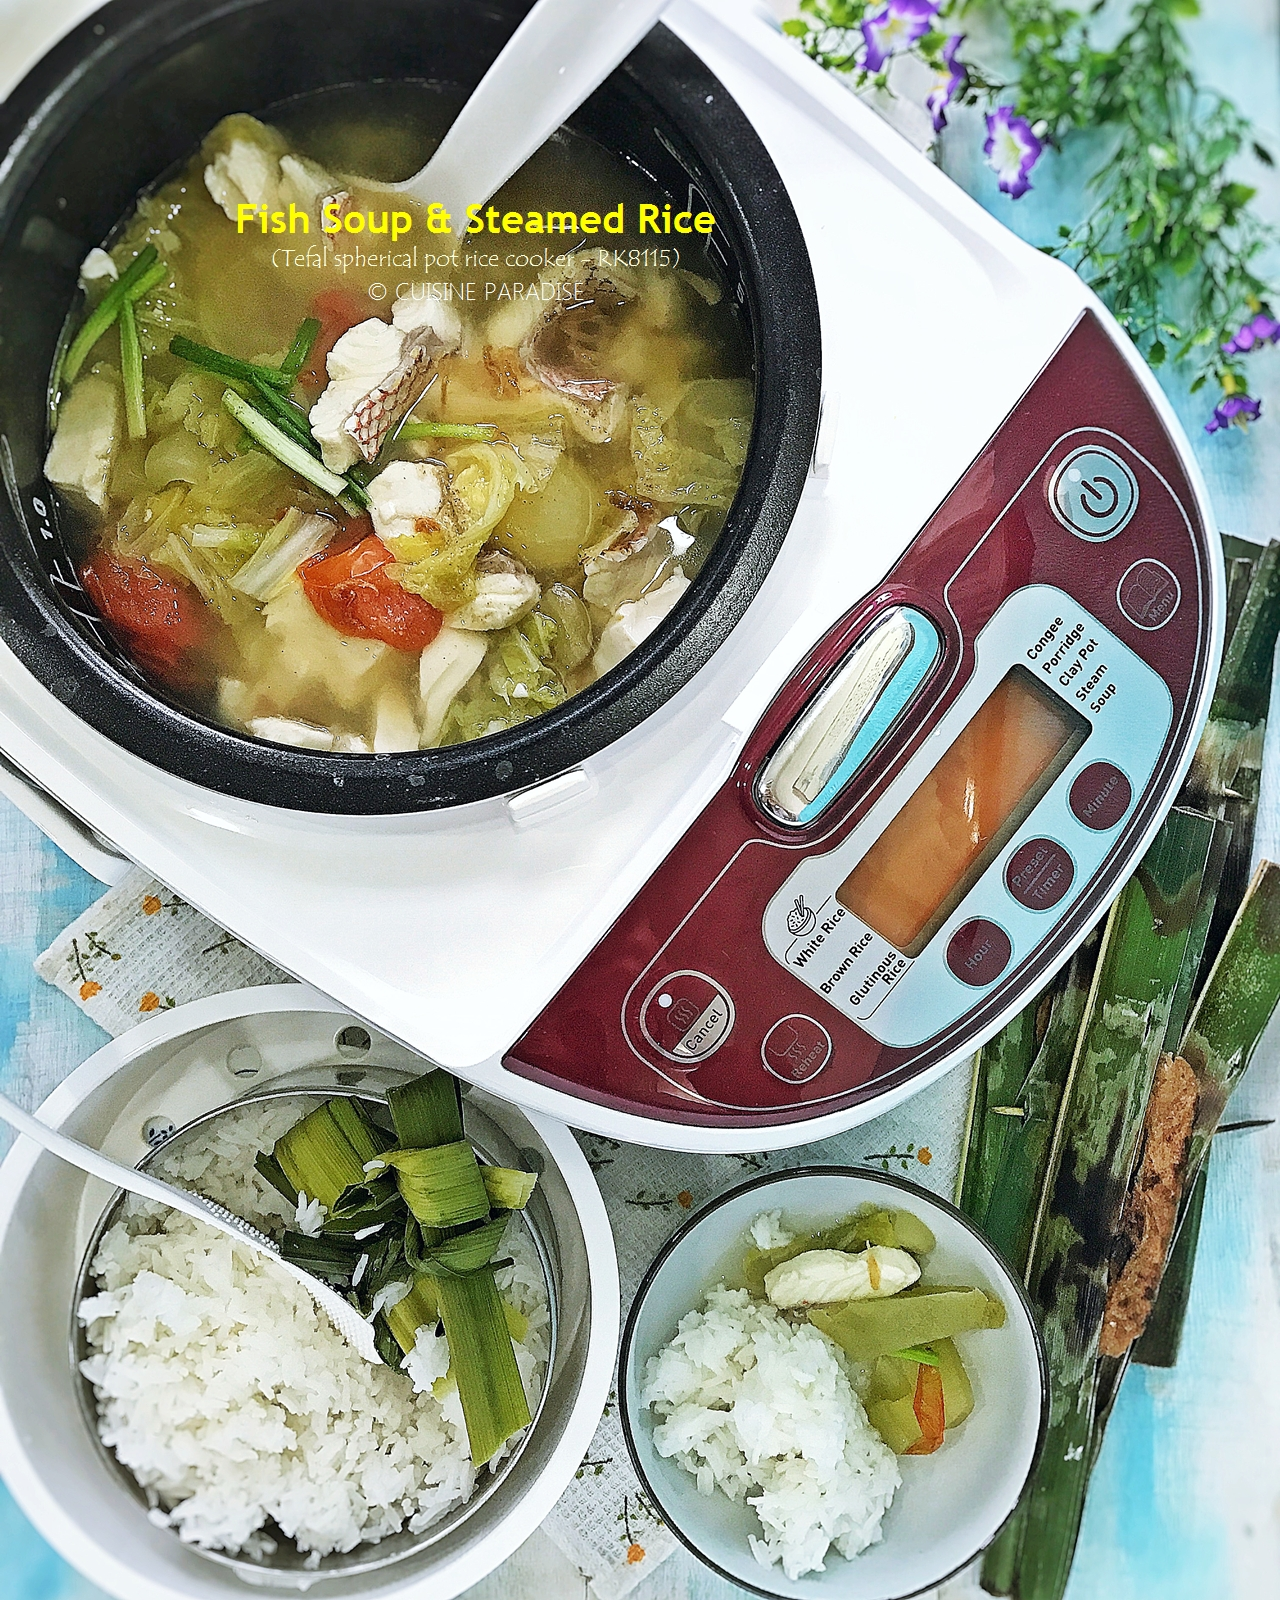 Cuisine Paradise Singapore Food Blog Recipes Reviews And Travel Fish Soup